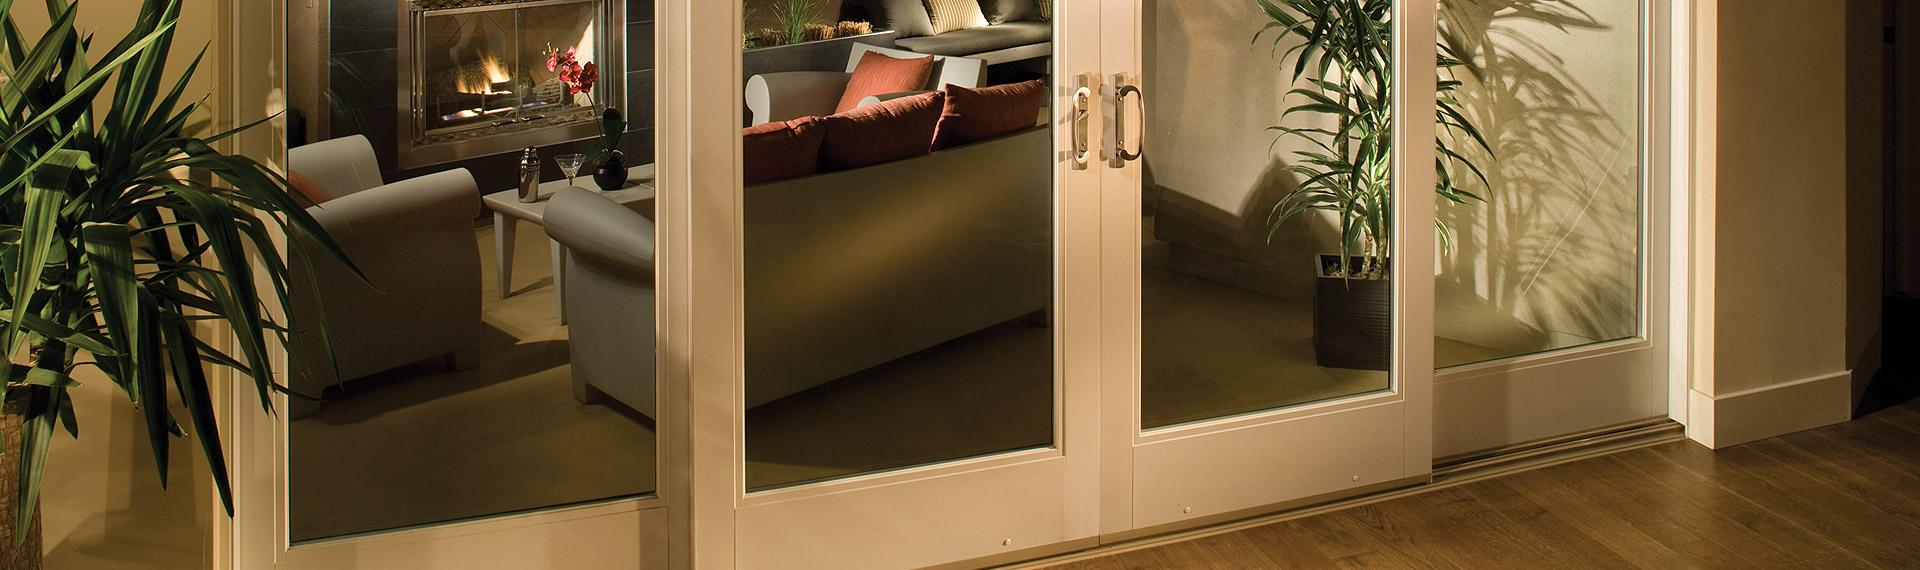 Ultra Series fiberglass 4-panel sliding patio door